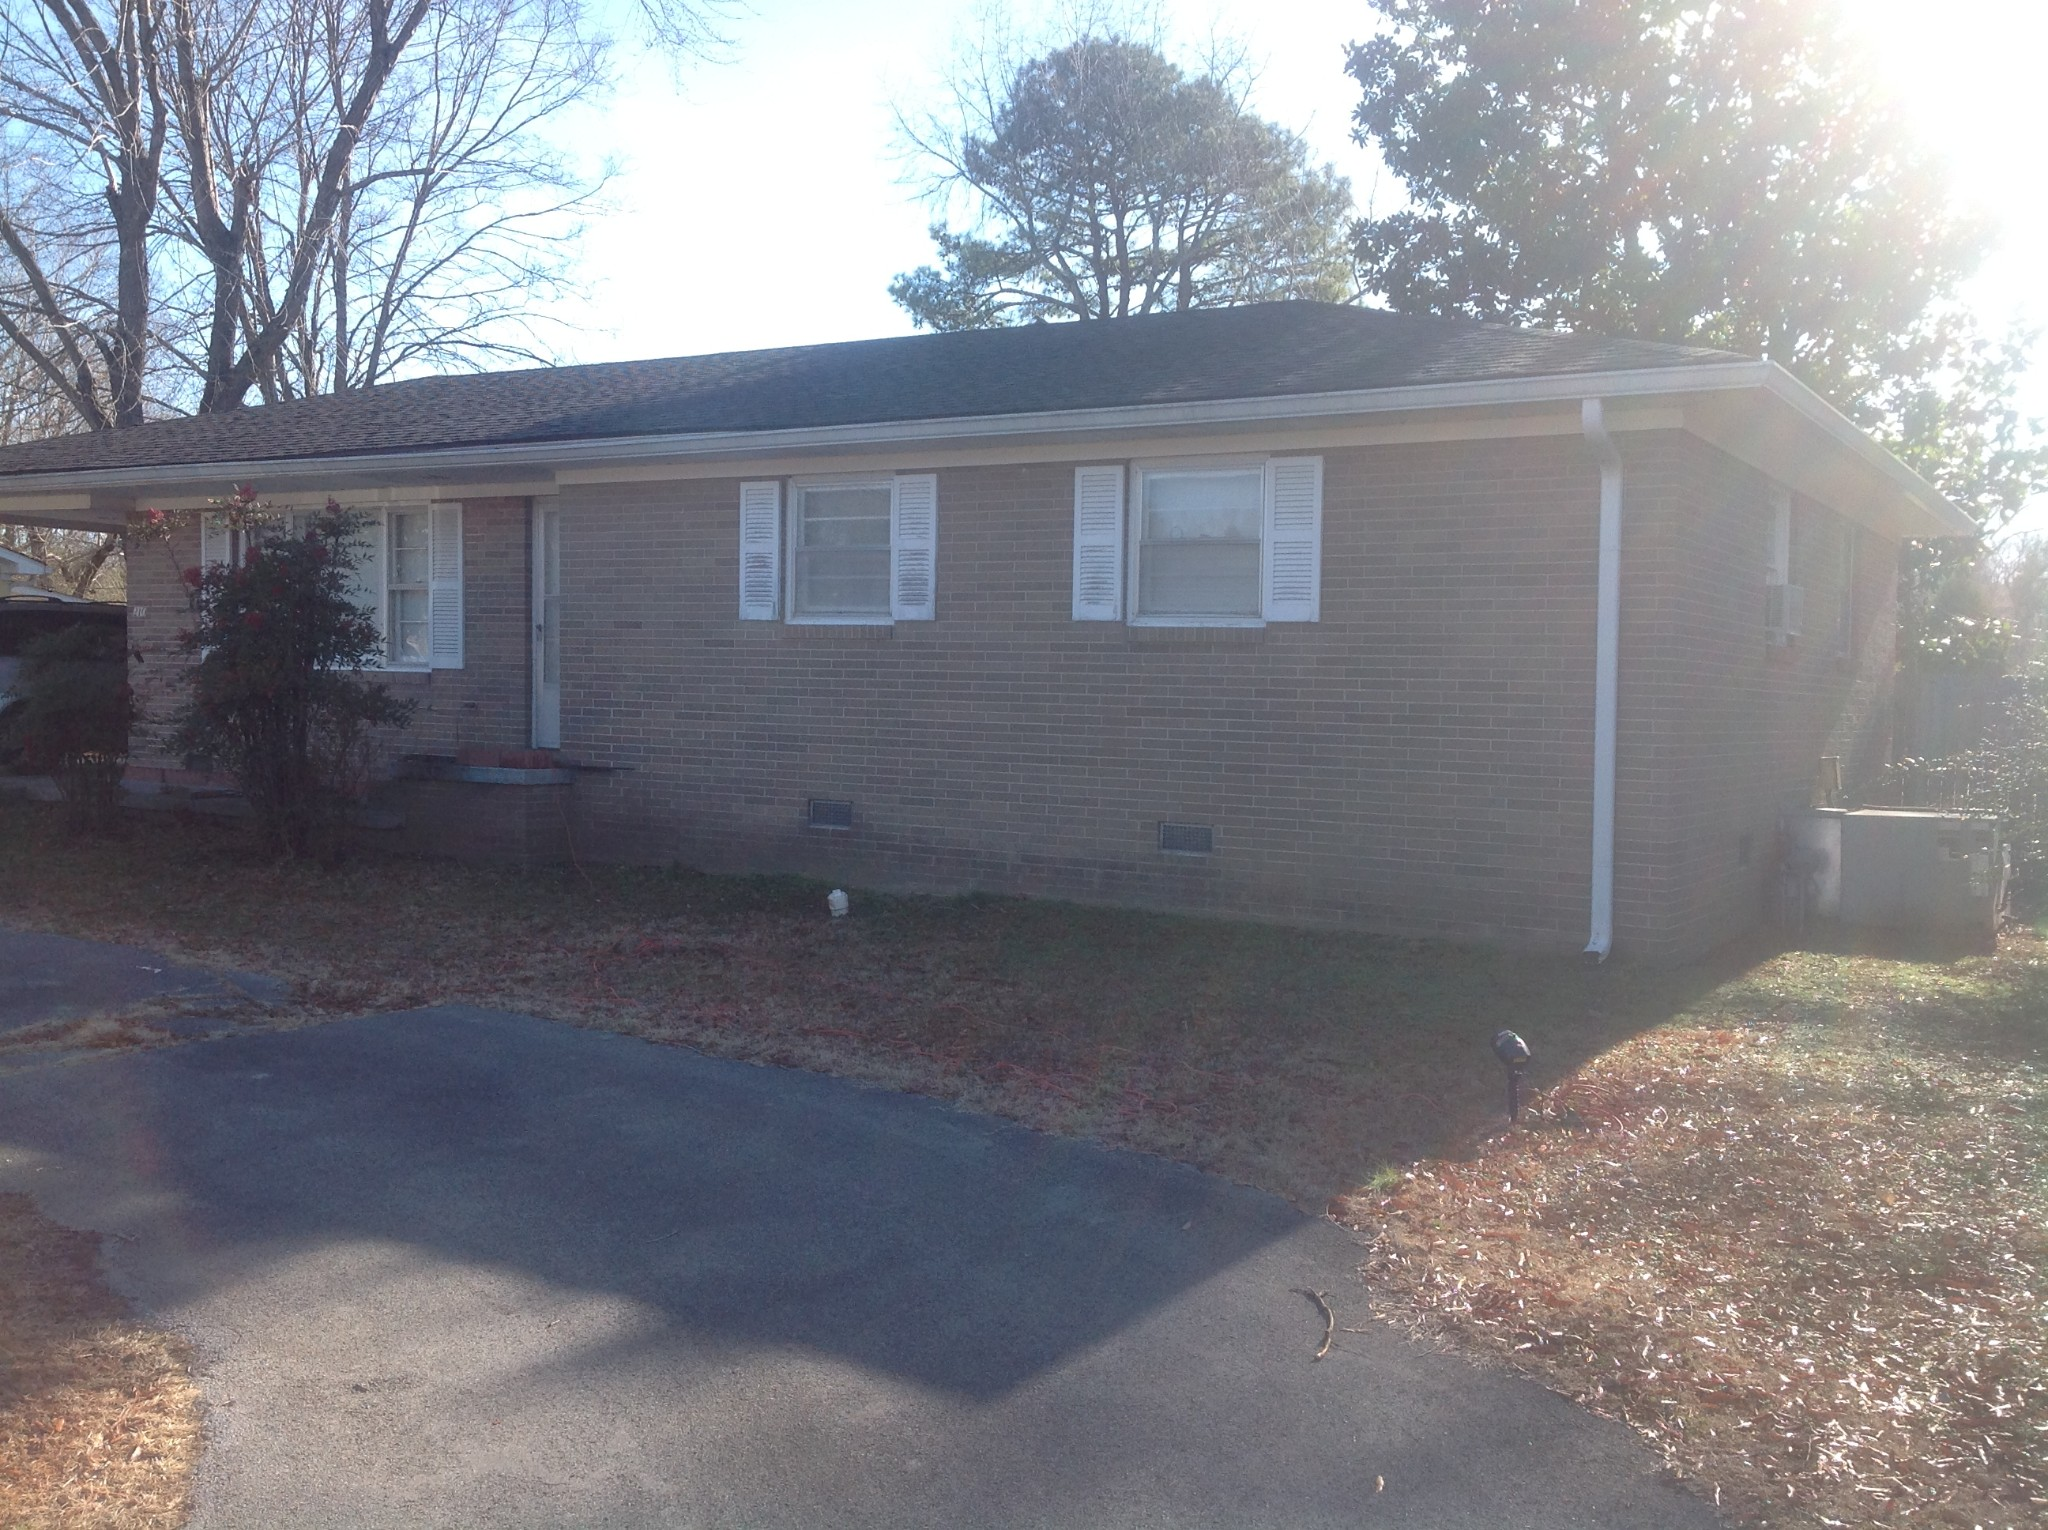 210 Sunset Dr, Waverly, TN 37185 - Waverly, TN real estate listing